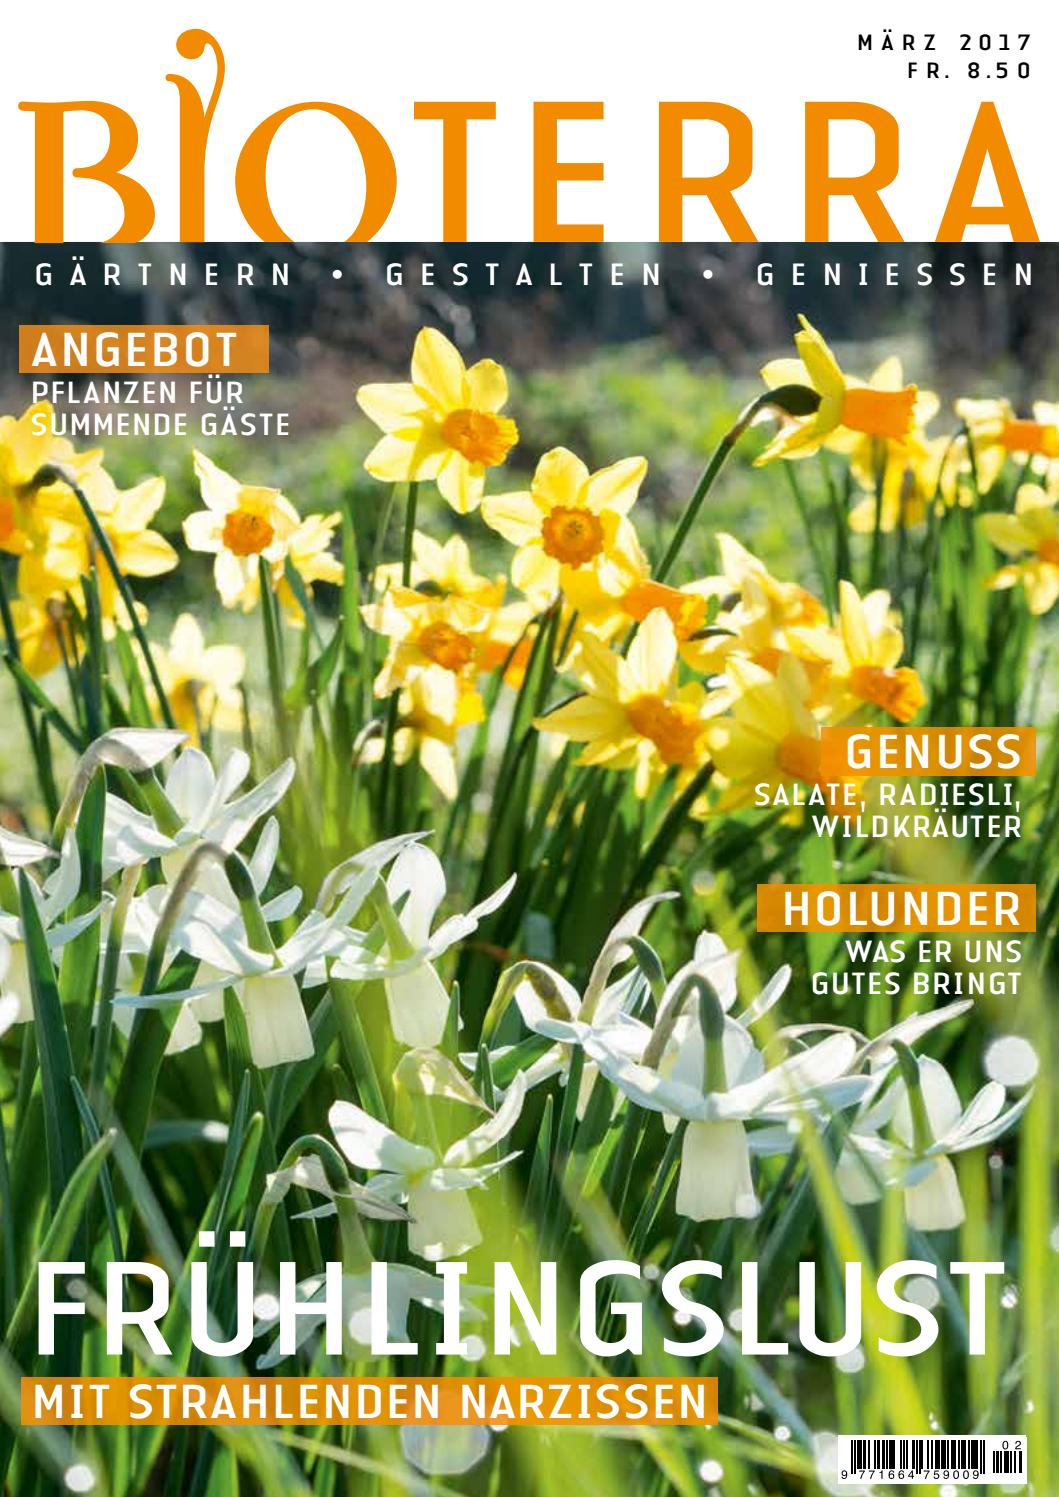 Tomaten Pflanzen Veredelungsstelle Bioterra April 2017 By Bioterra Ch Issuu